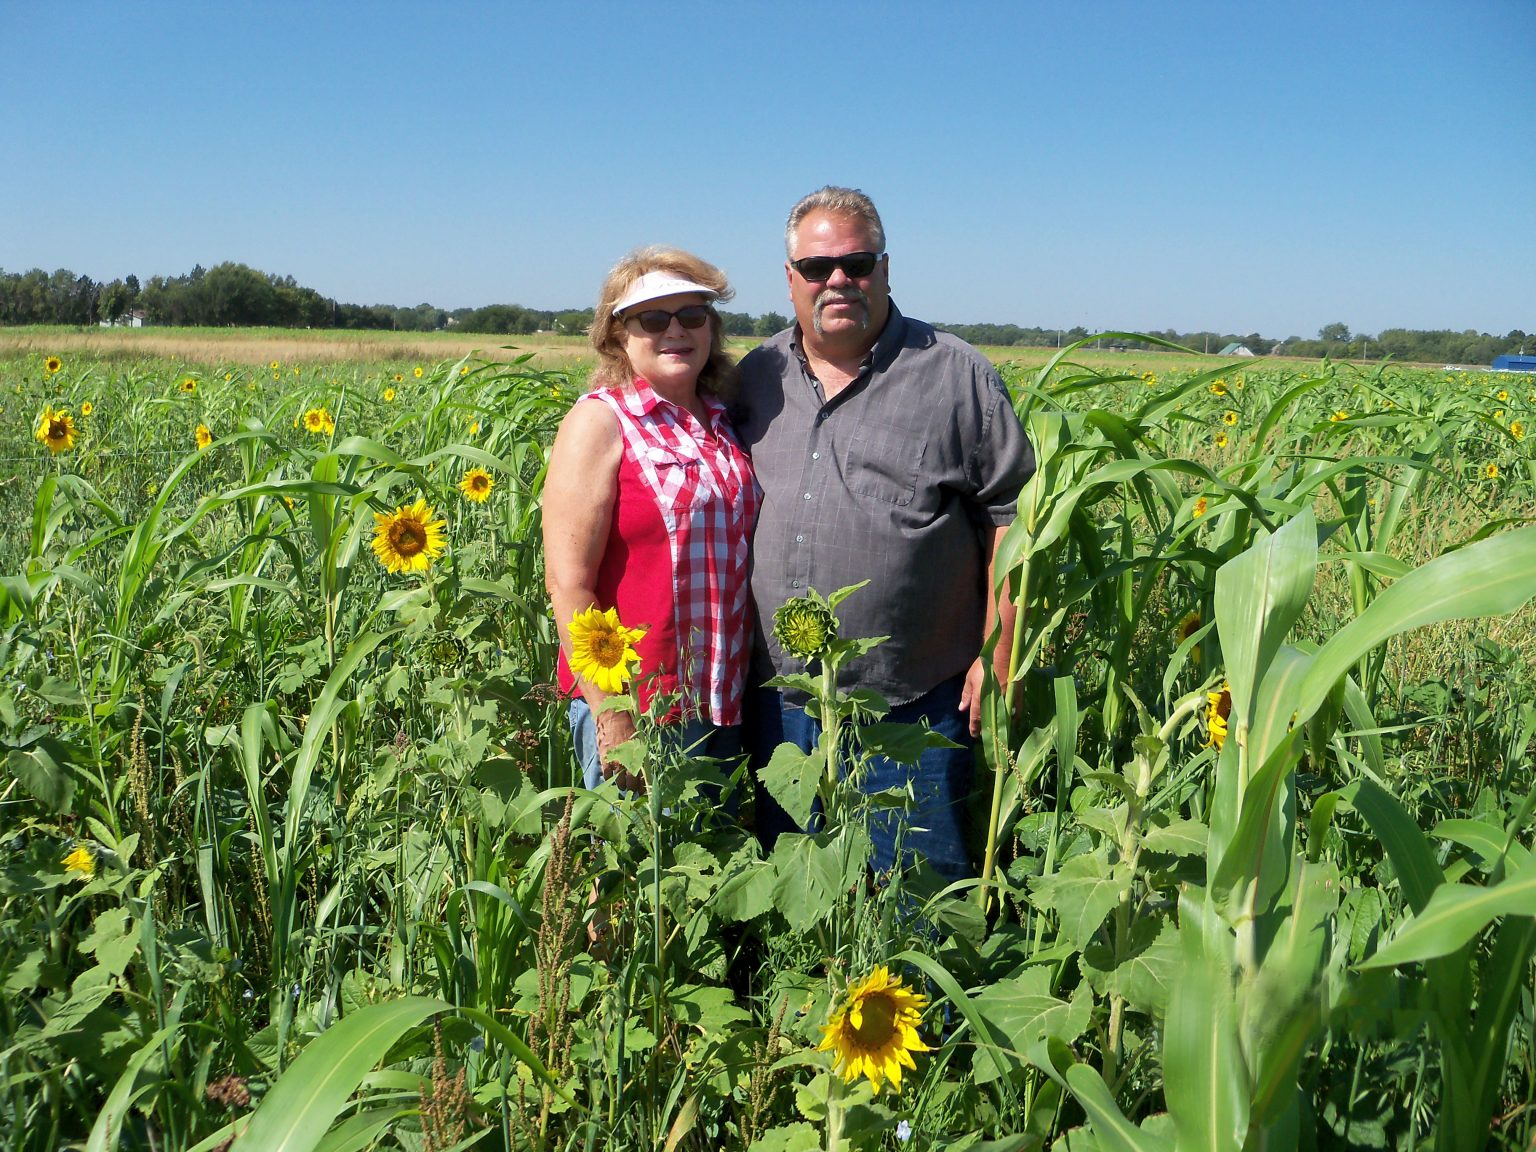 Nebraska farmer wants to leave a legacy of soil health